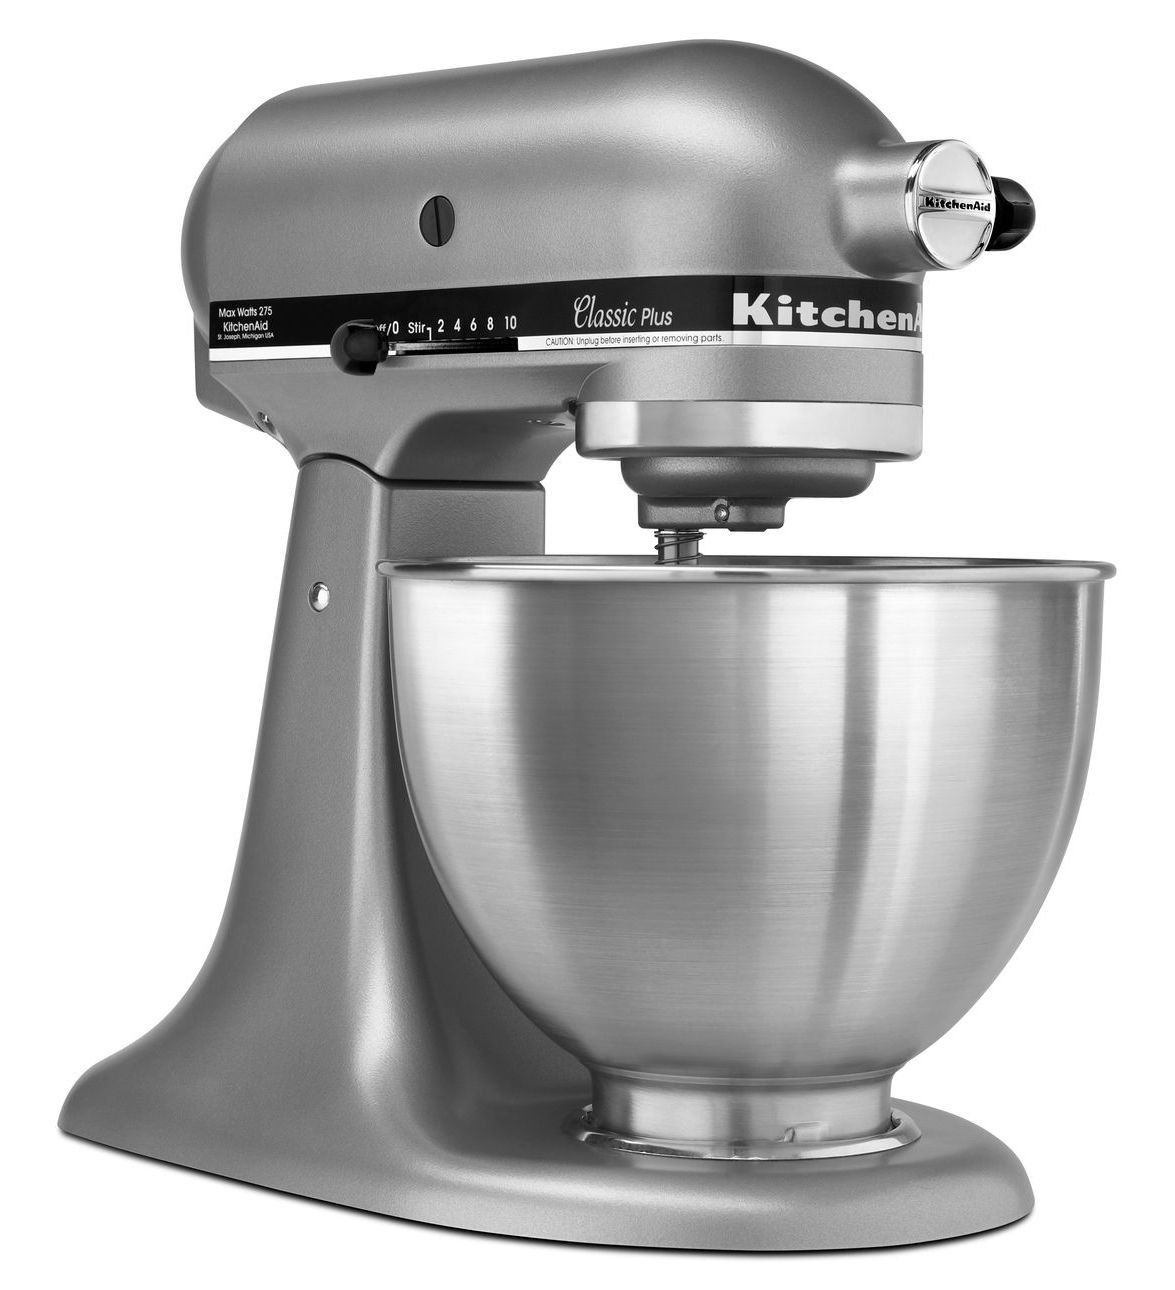 KitchenAid KSM75SL Classic Plus 4.5-Qt. Tilt-Head Stand Mixer, Silver by KitchenAid